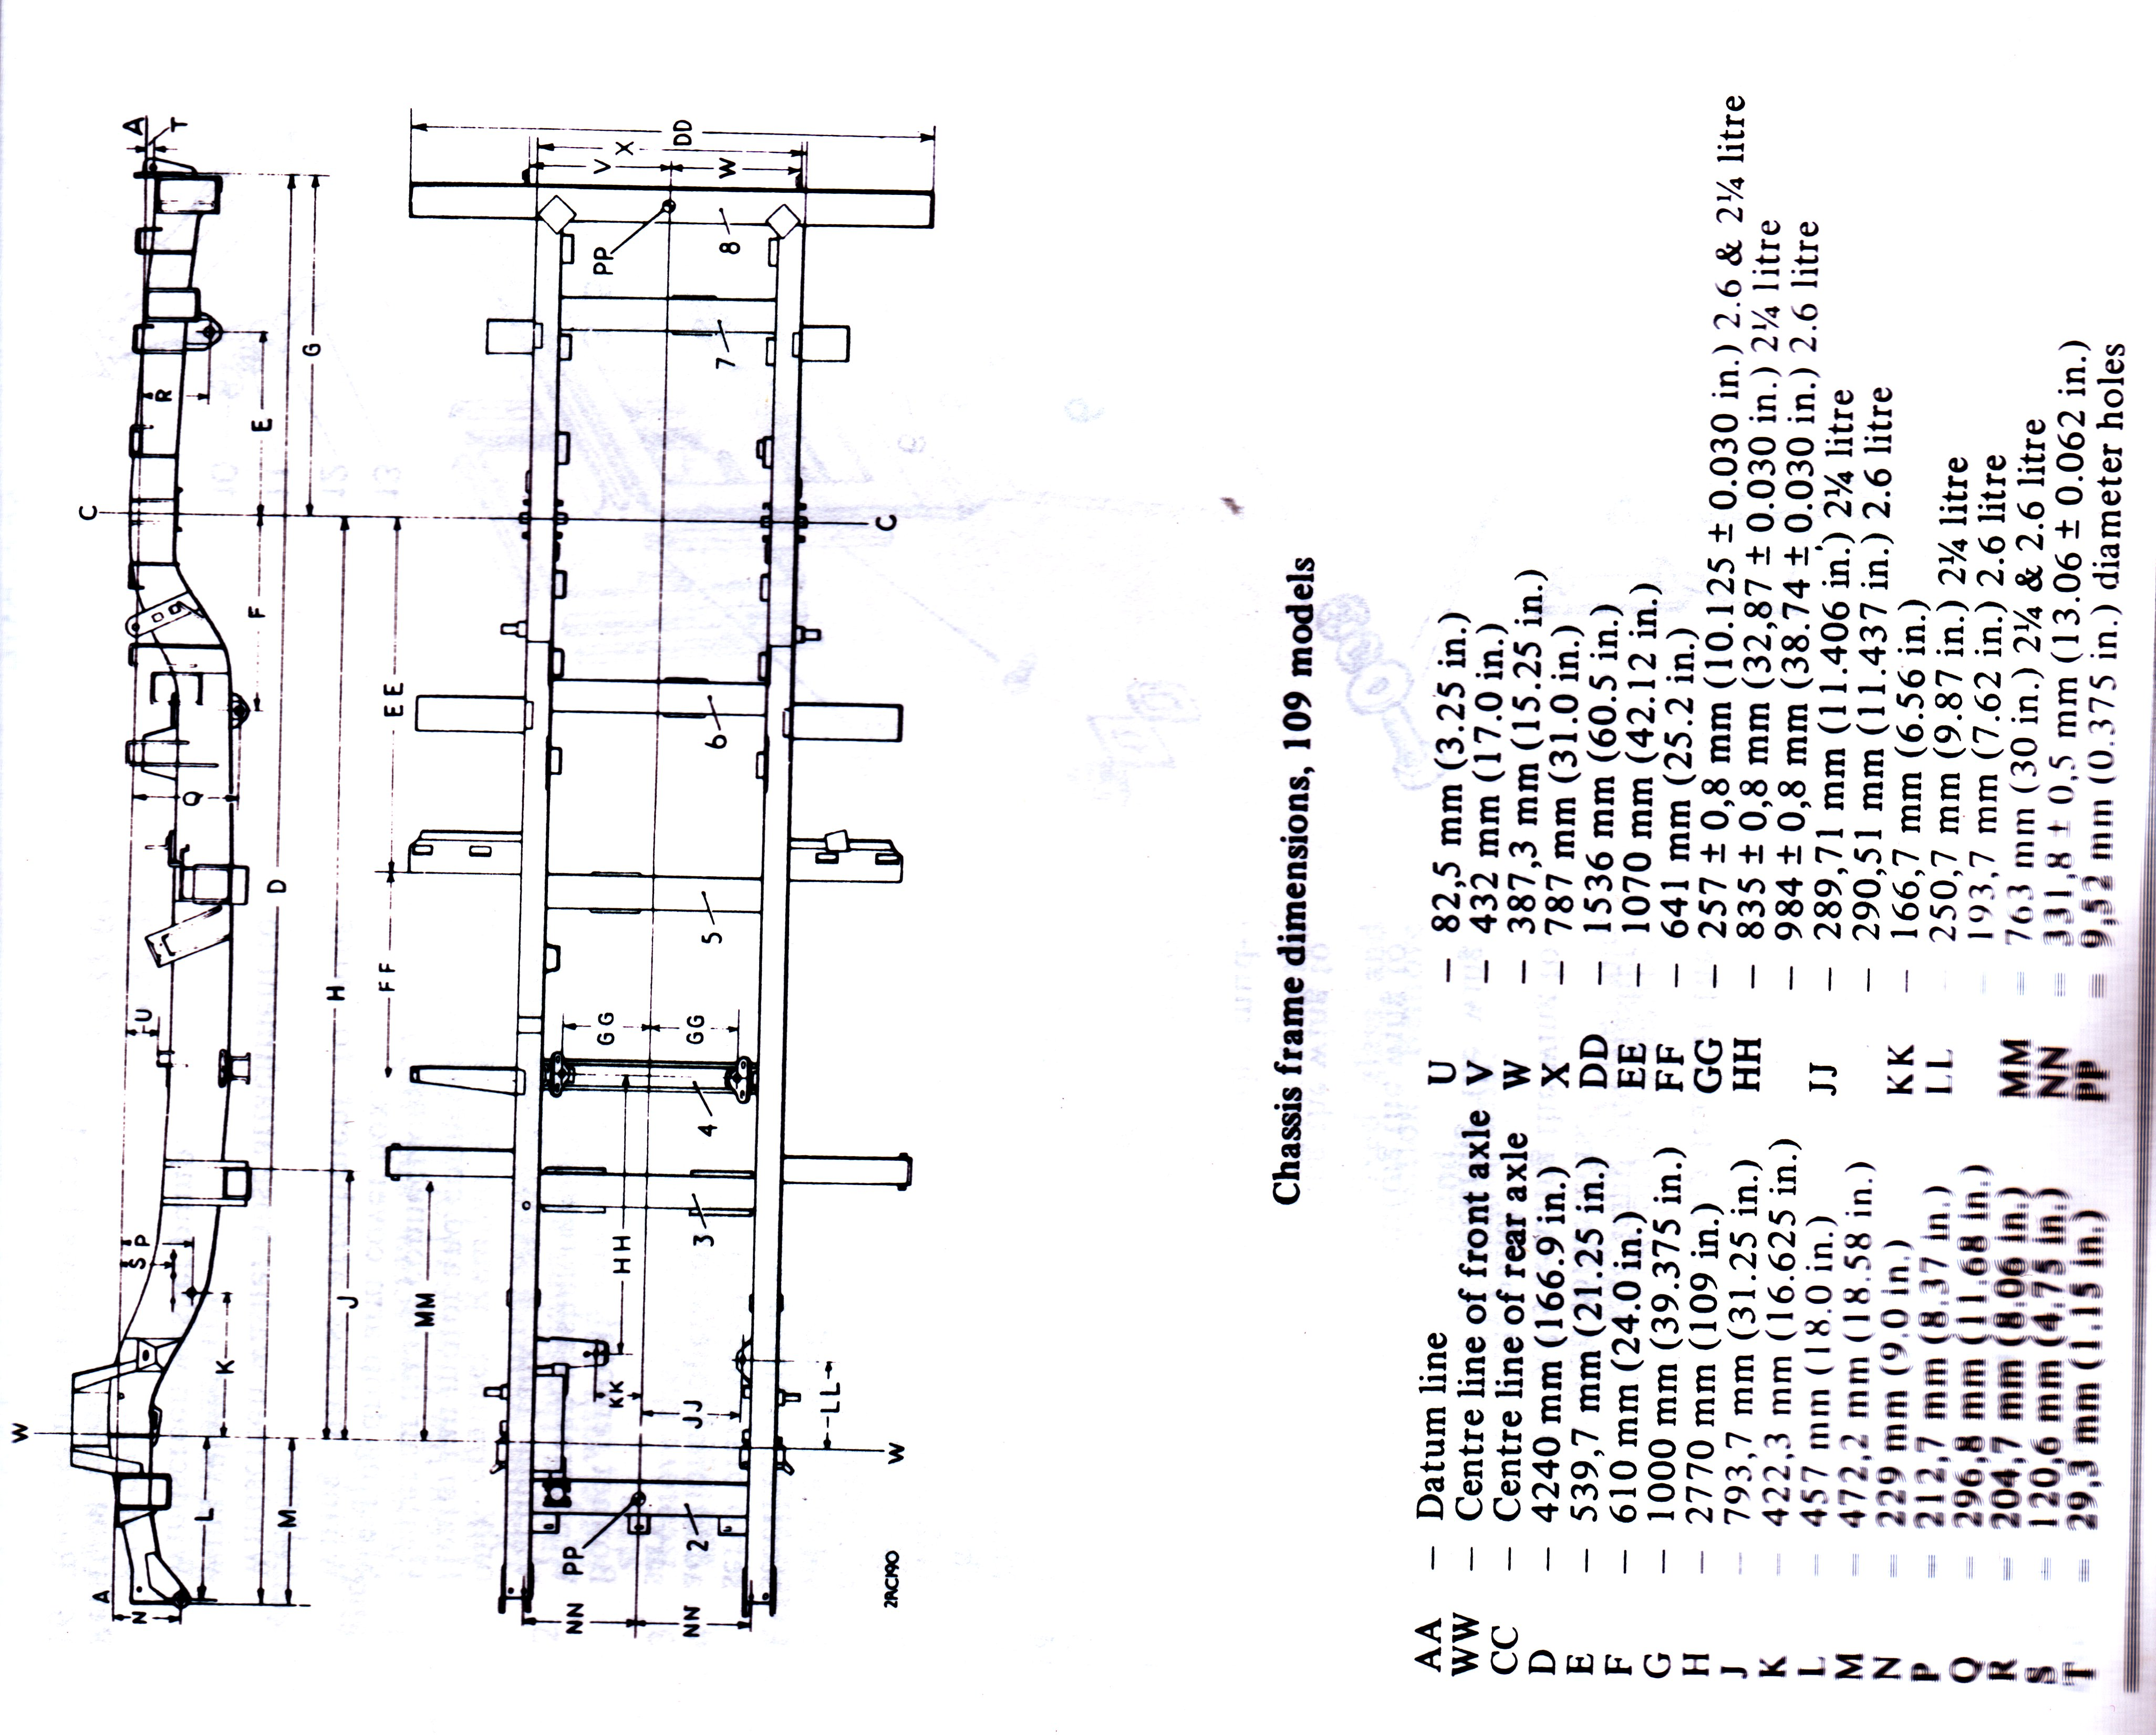 Chassis drawings Series Forum LR4x4 The Land Rover Forum